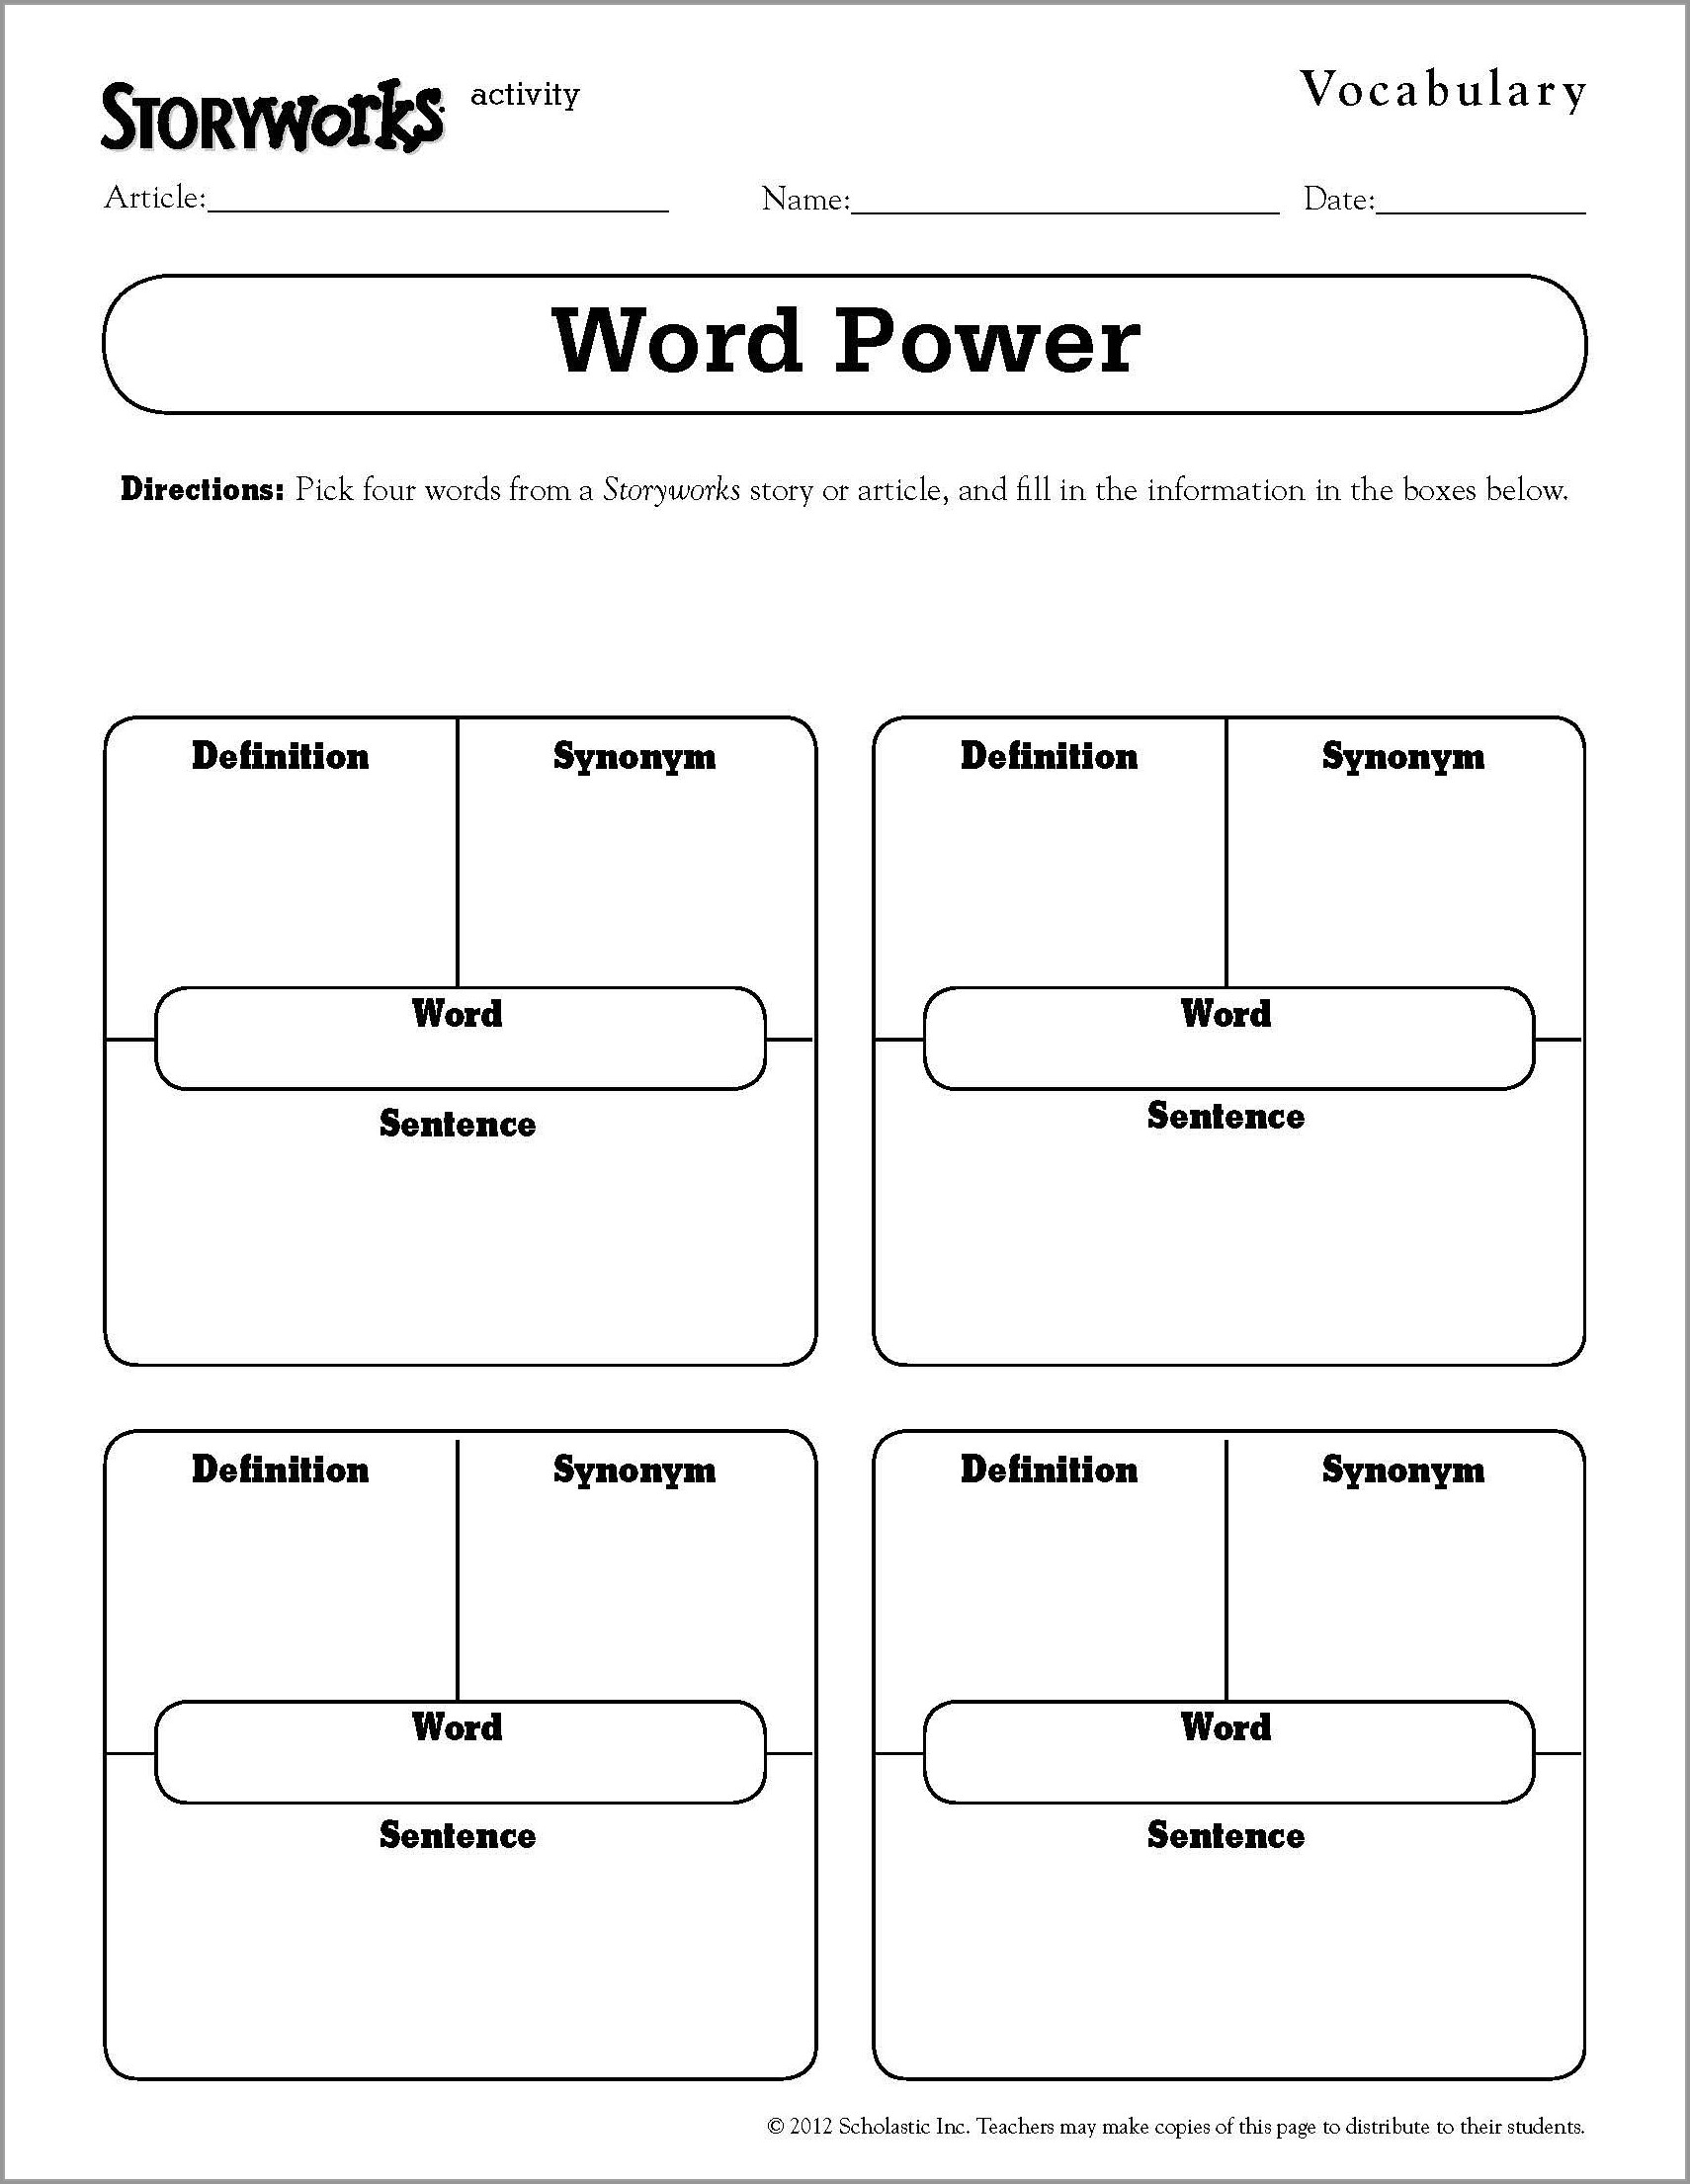 Science Vocabulary Worksheet Template